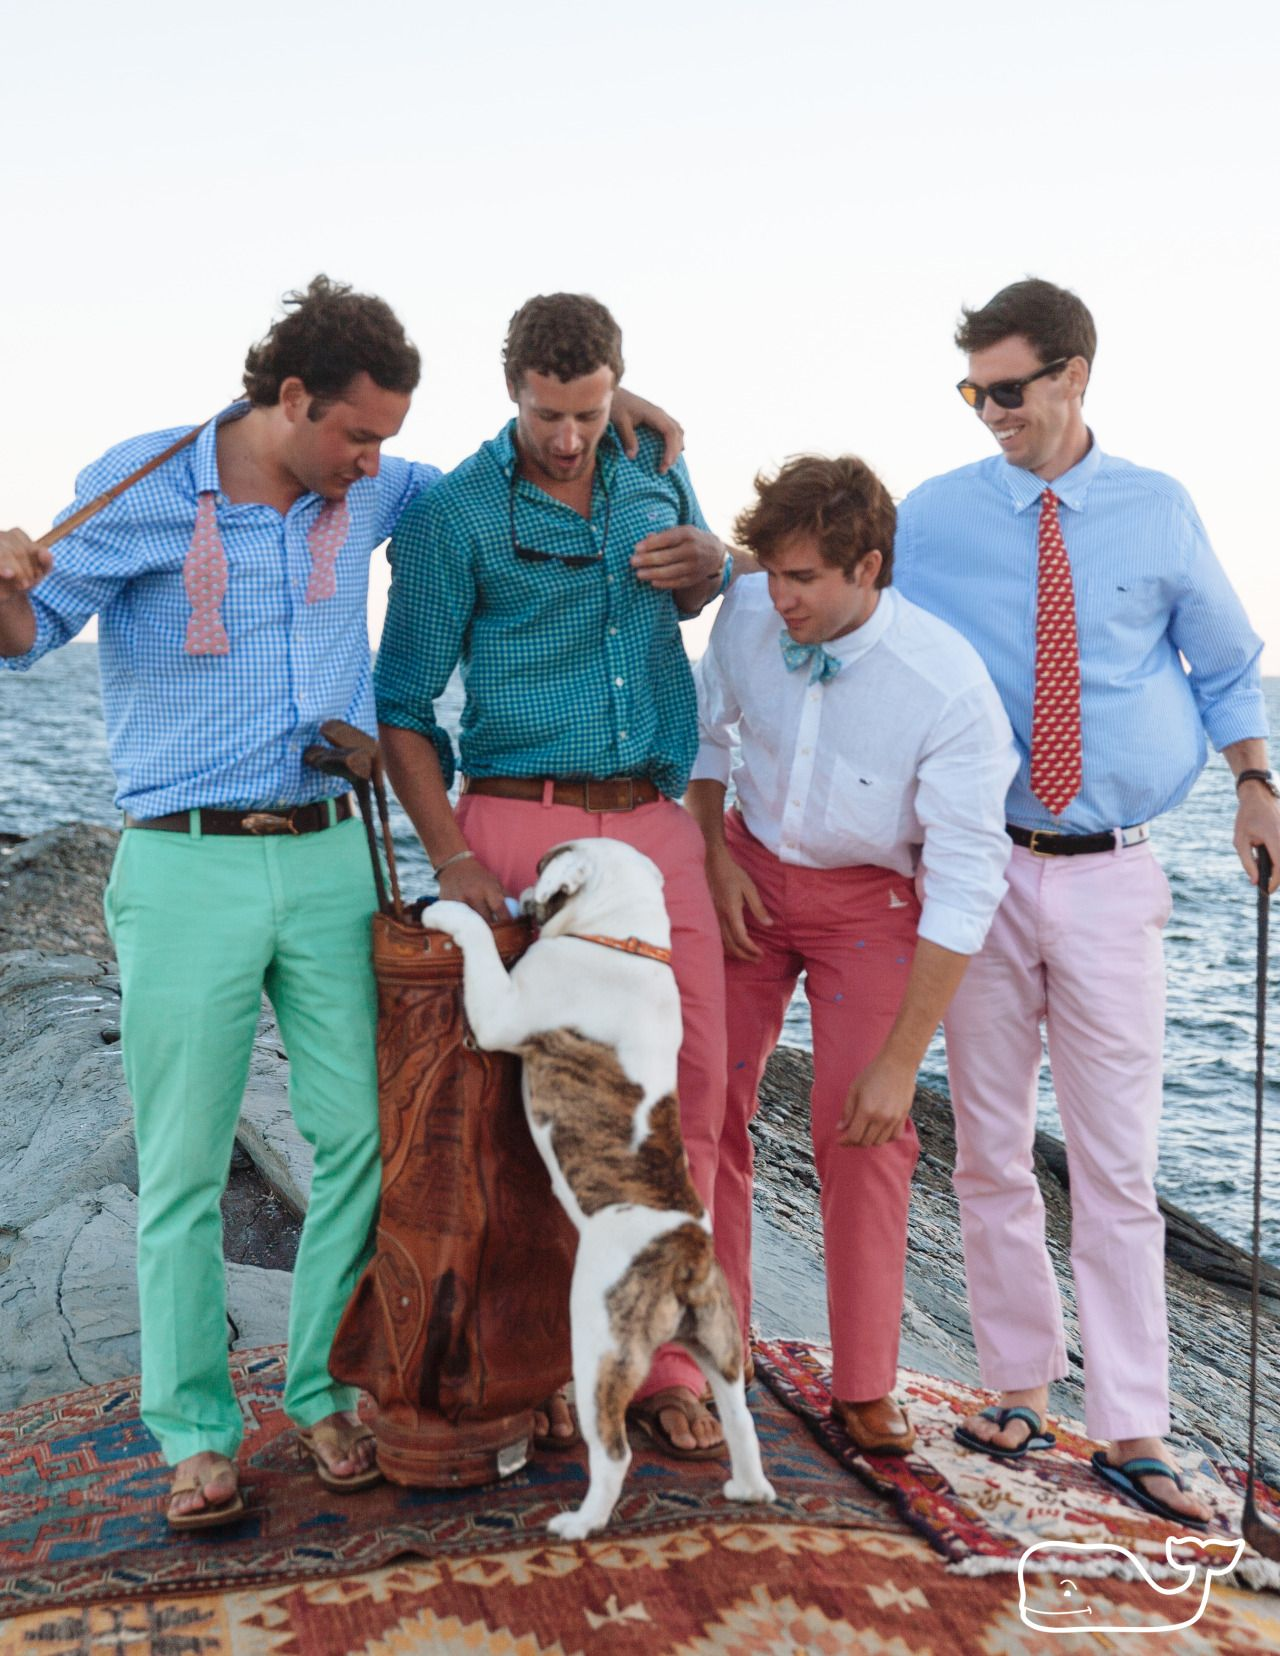 vineyardvines:  With special guest: Freddy the Bulldog